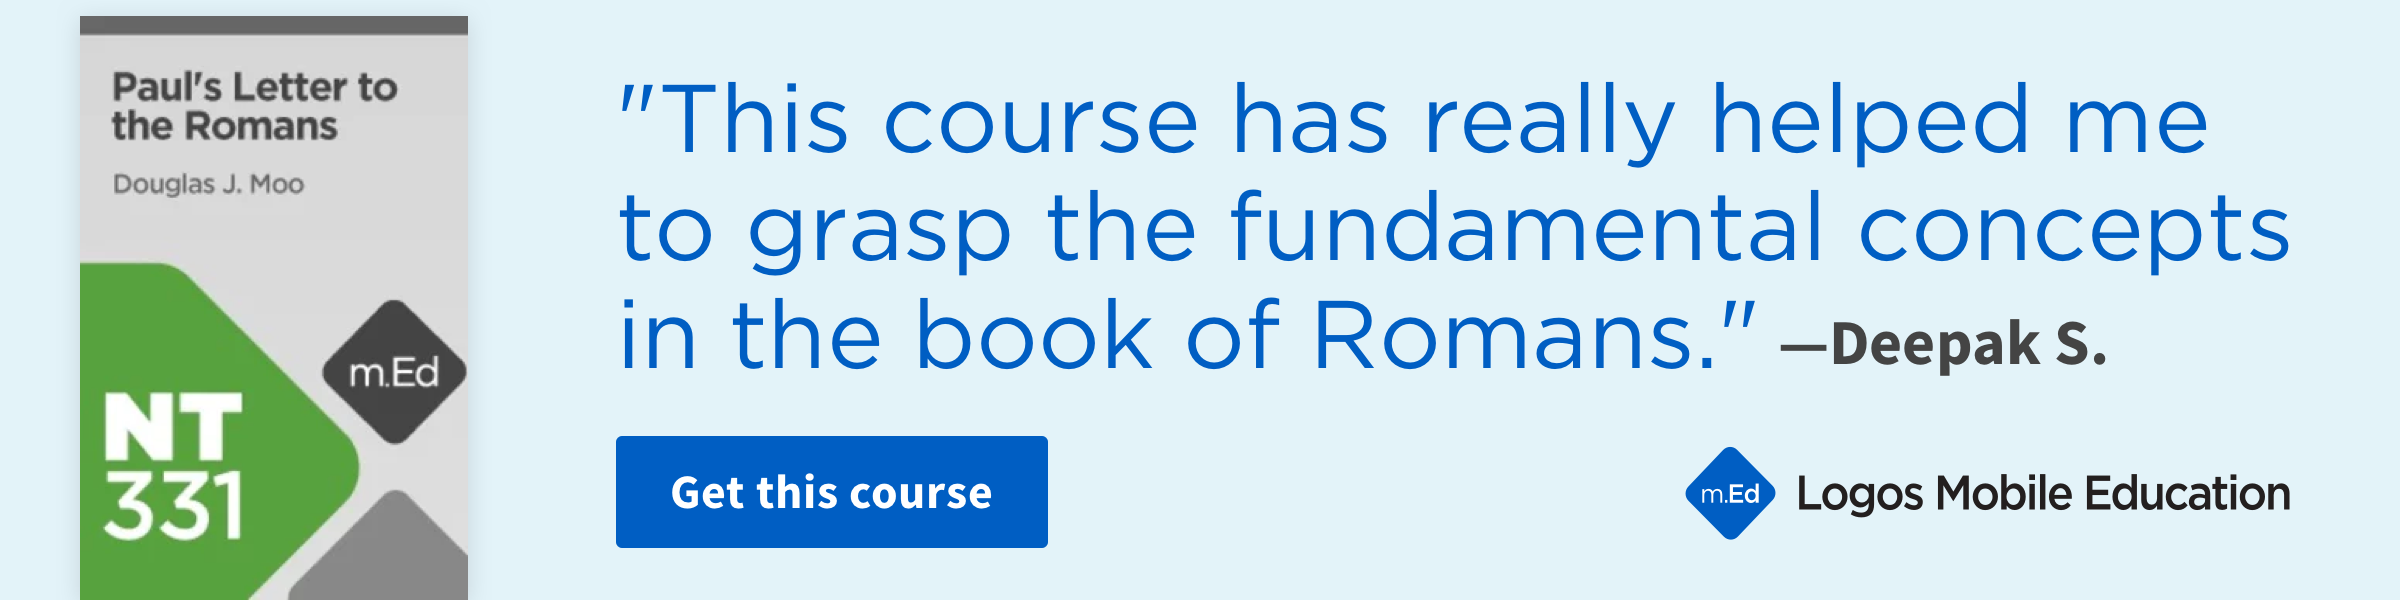 Book Study Course: Paul's Letter to the Romans